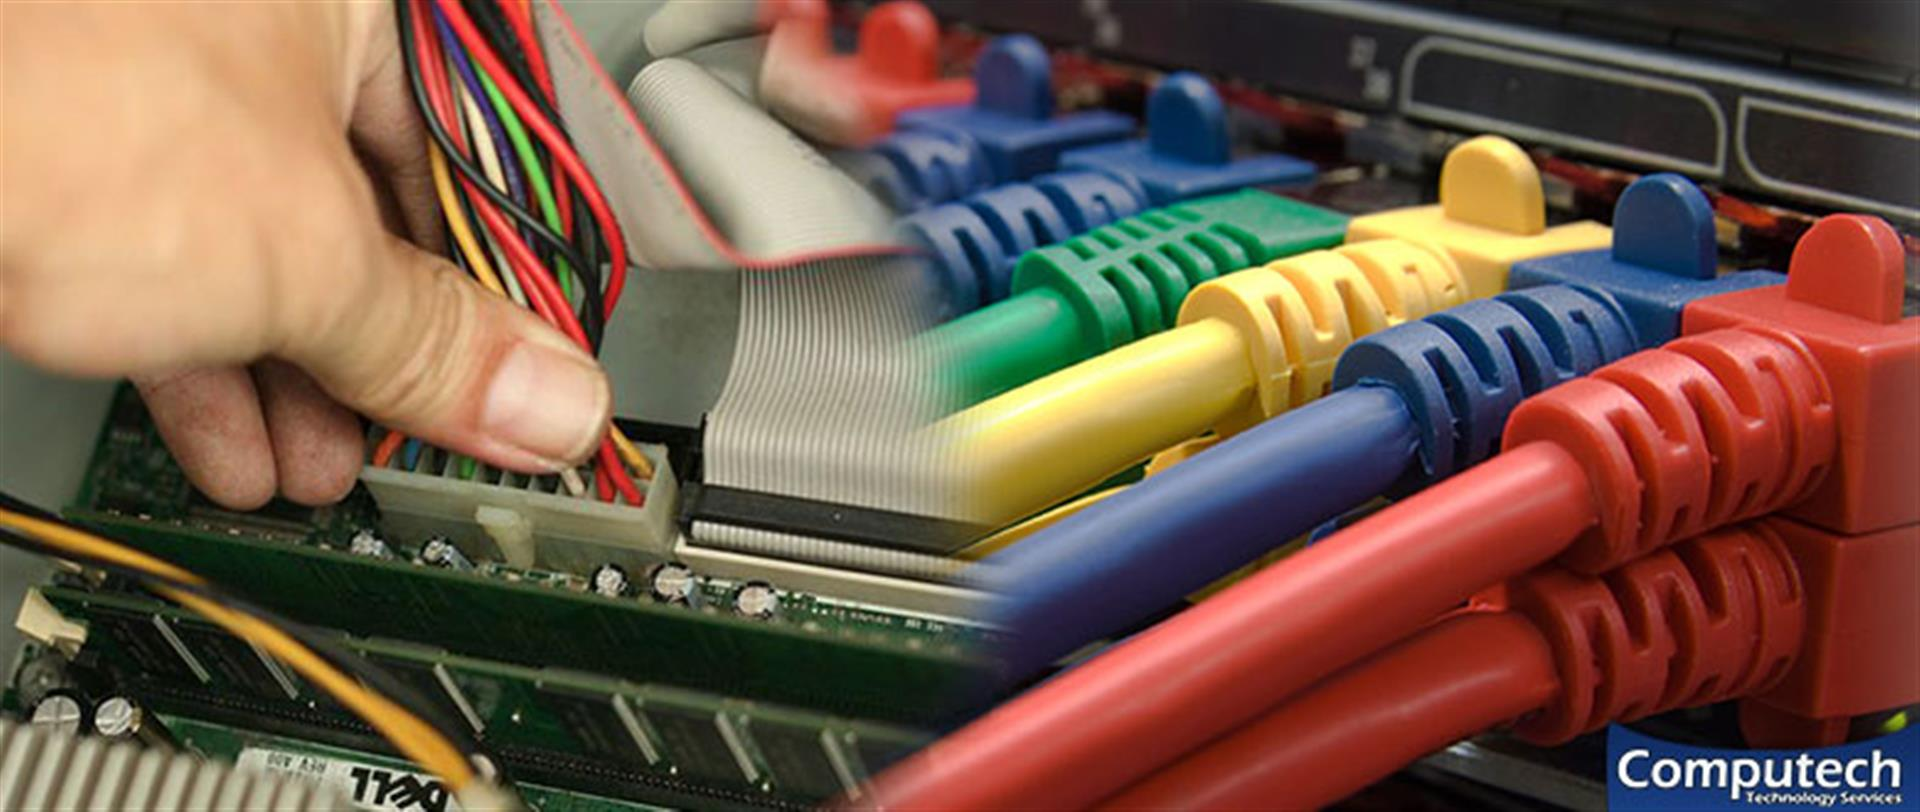 Centreville Alabama Onsite Computer PC & Printer Repairs, Network, Voice & Data Wiring Solutions